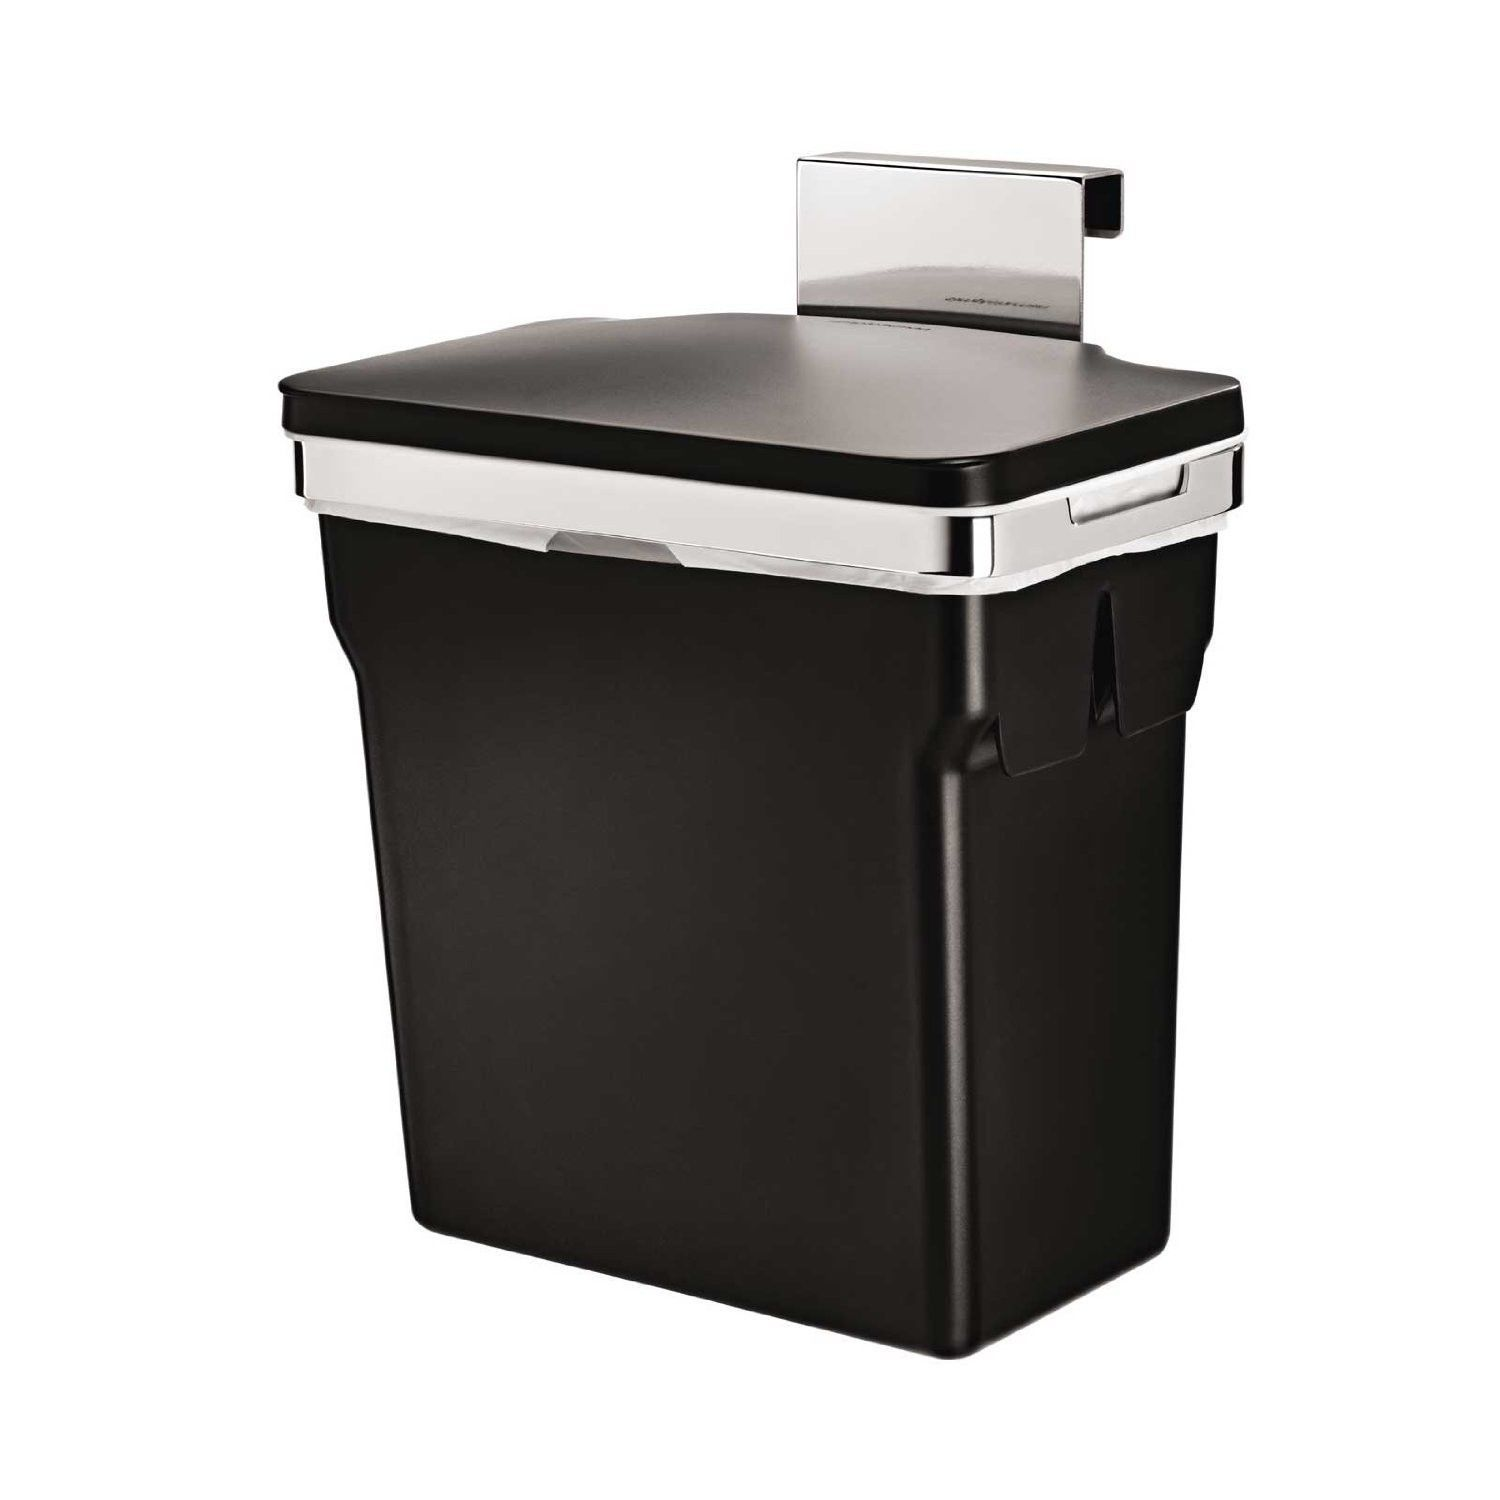 Kitchen Cabinet Trash Bin Gallon In Cabinet Trash Can Hanging Cabinet Mount Waste